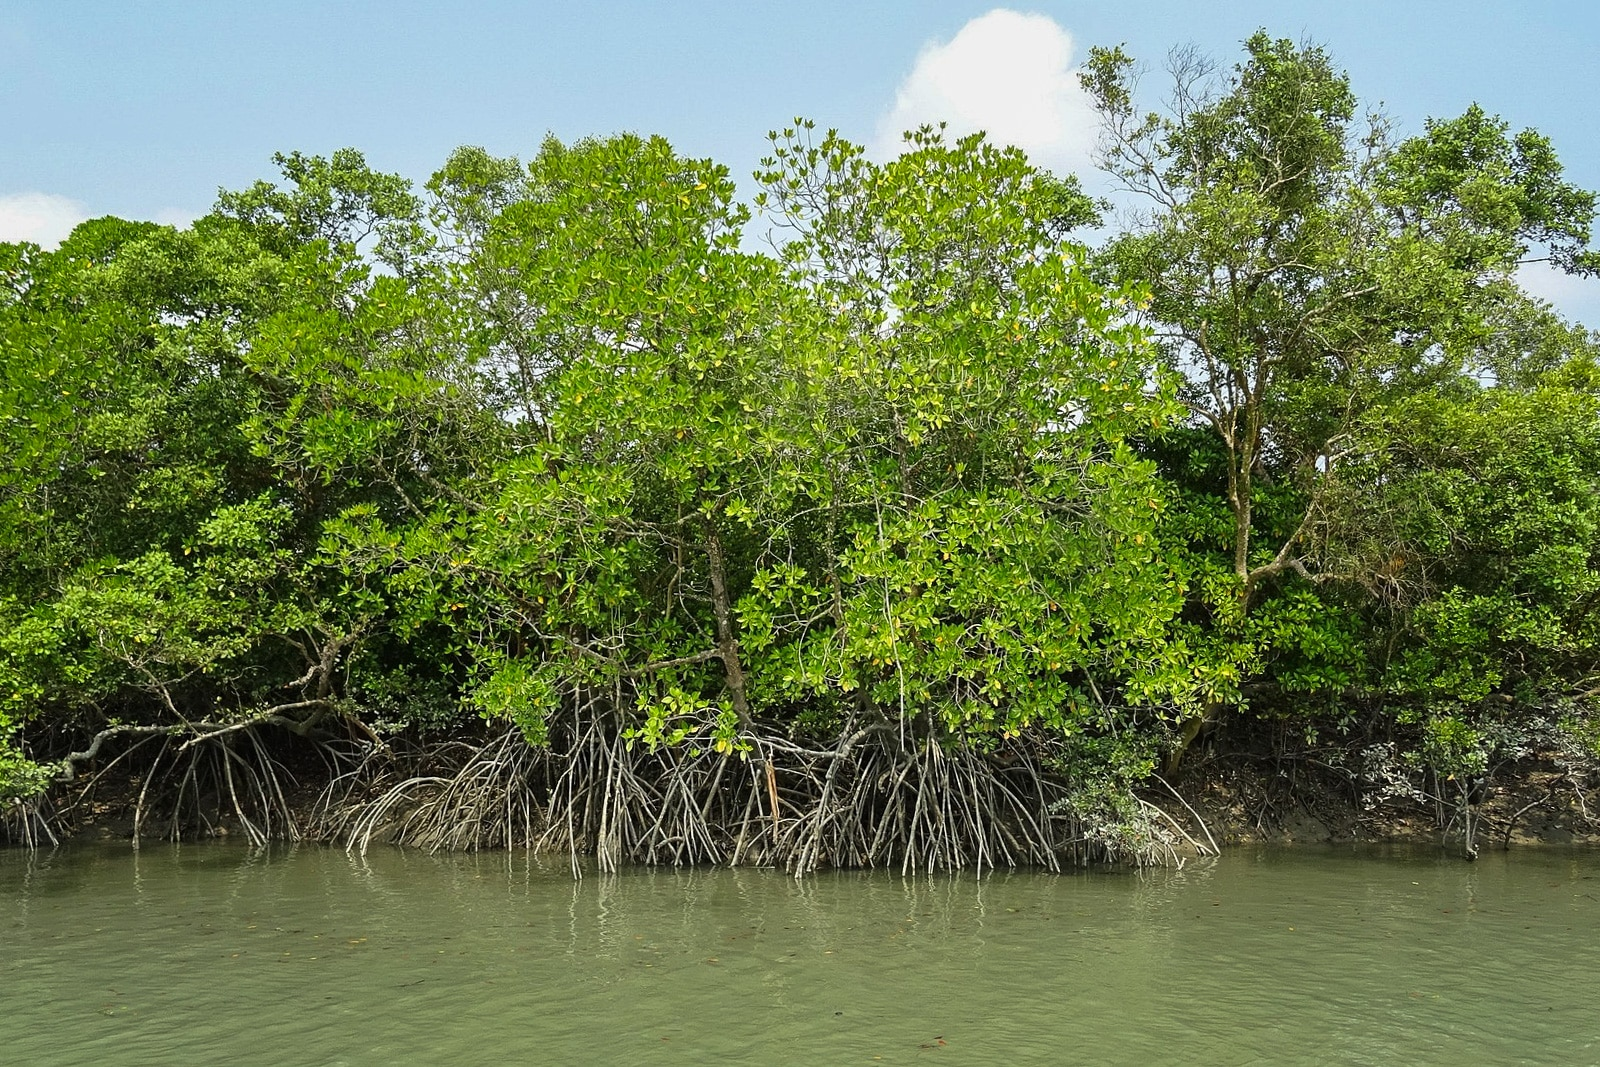 Backpacking Bangladesh travel guide - Sundarbans Mangroves from Pixabay